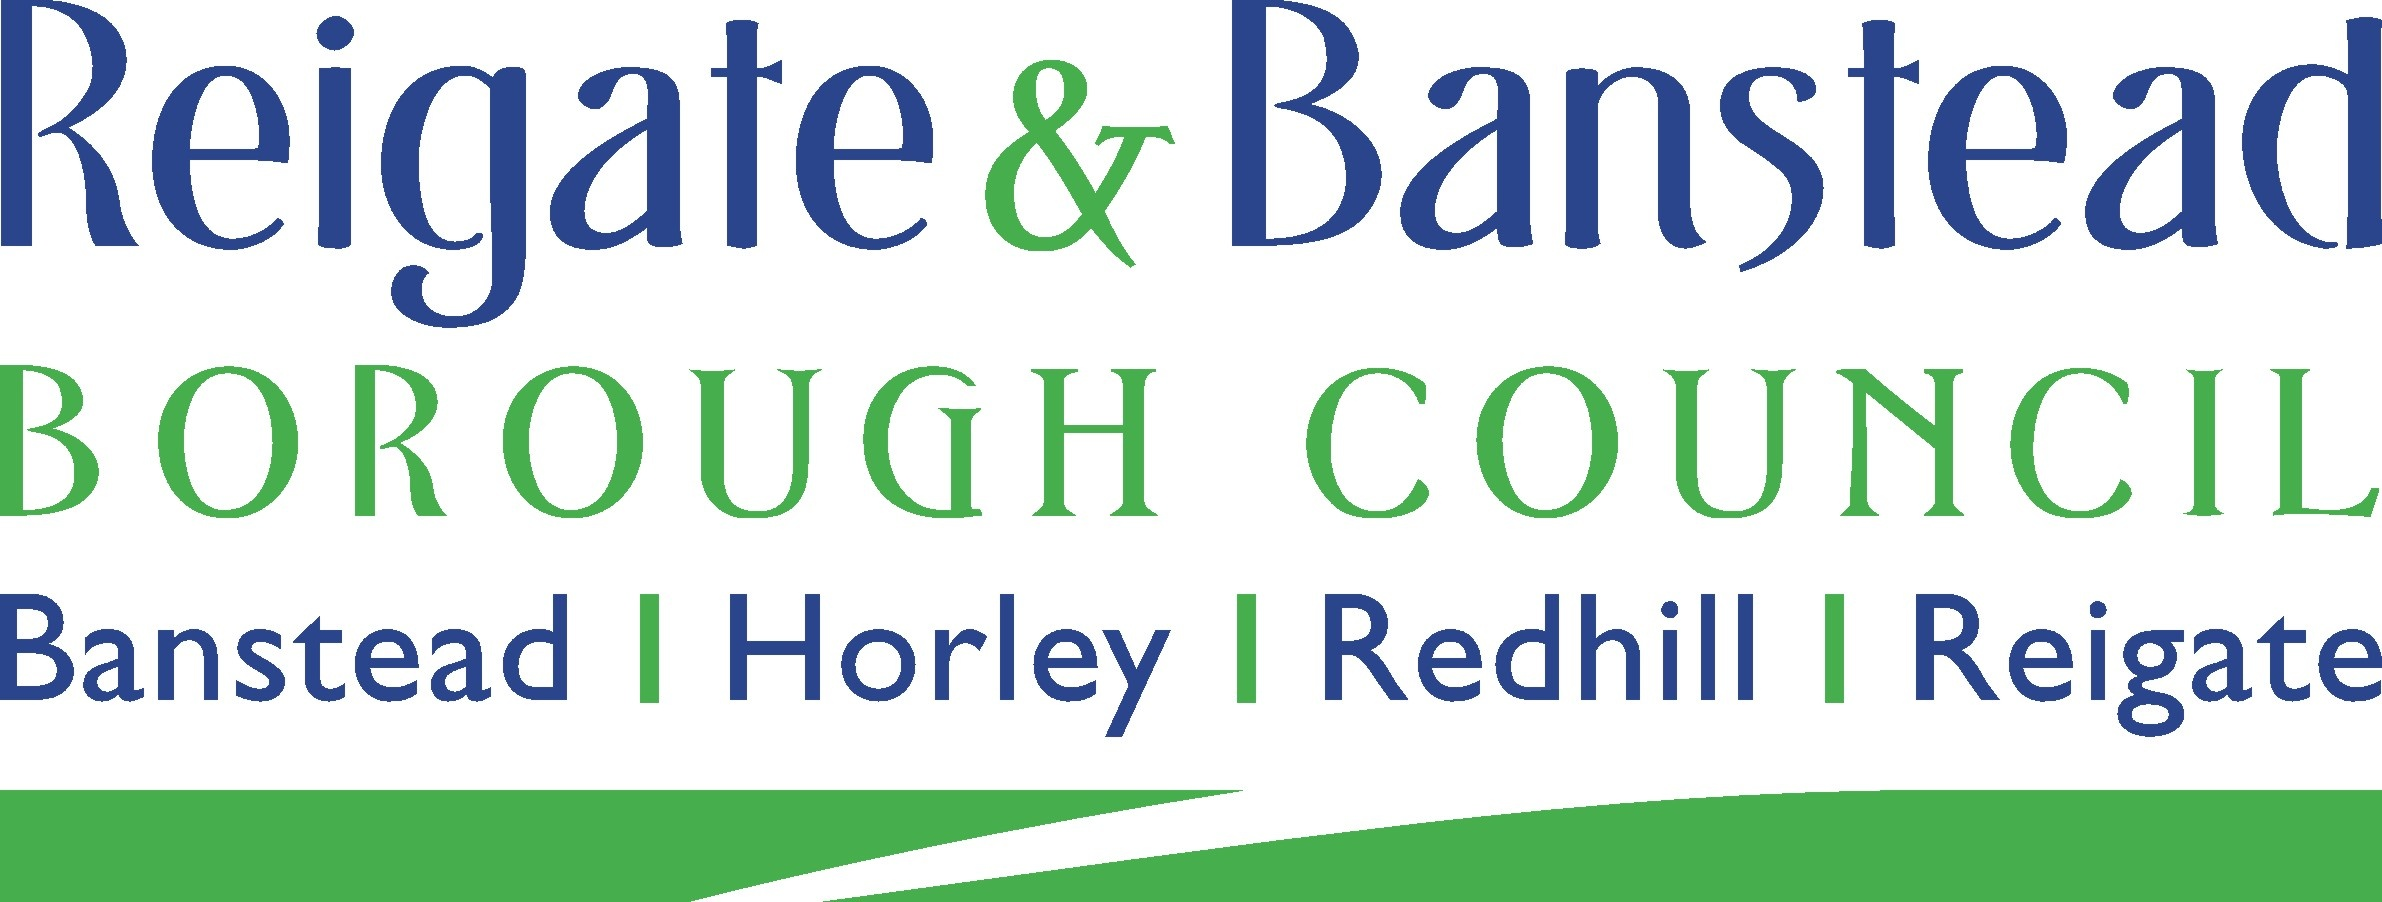 reigate_and_banstead_logo_2382